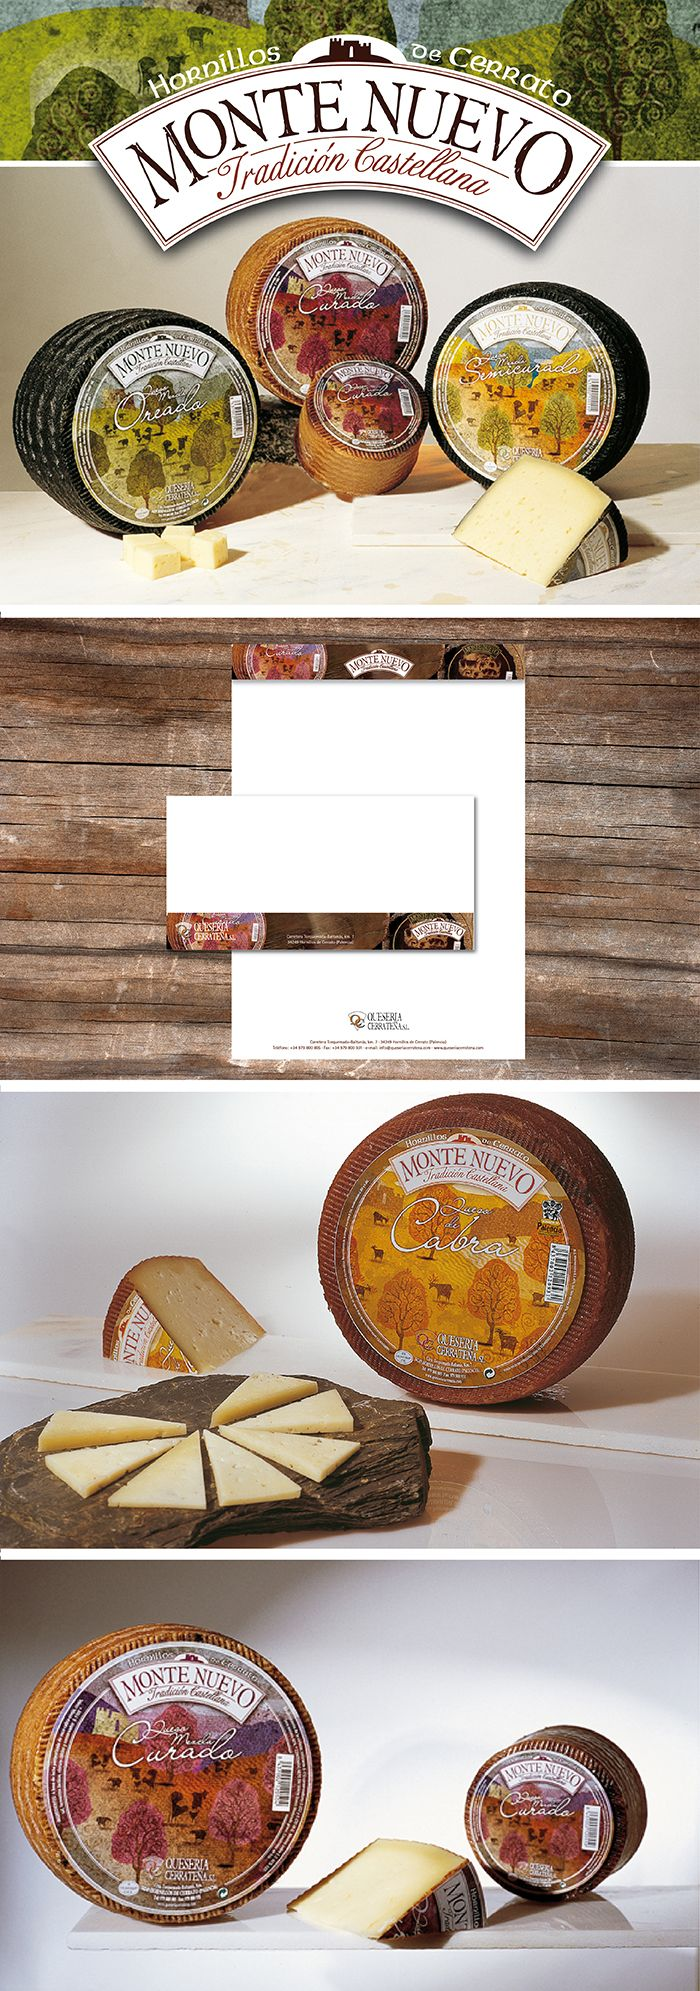 Cheese labels design.